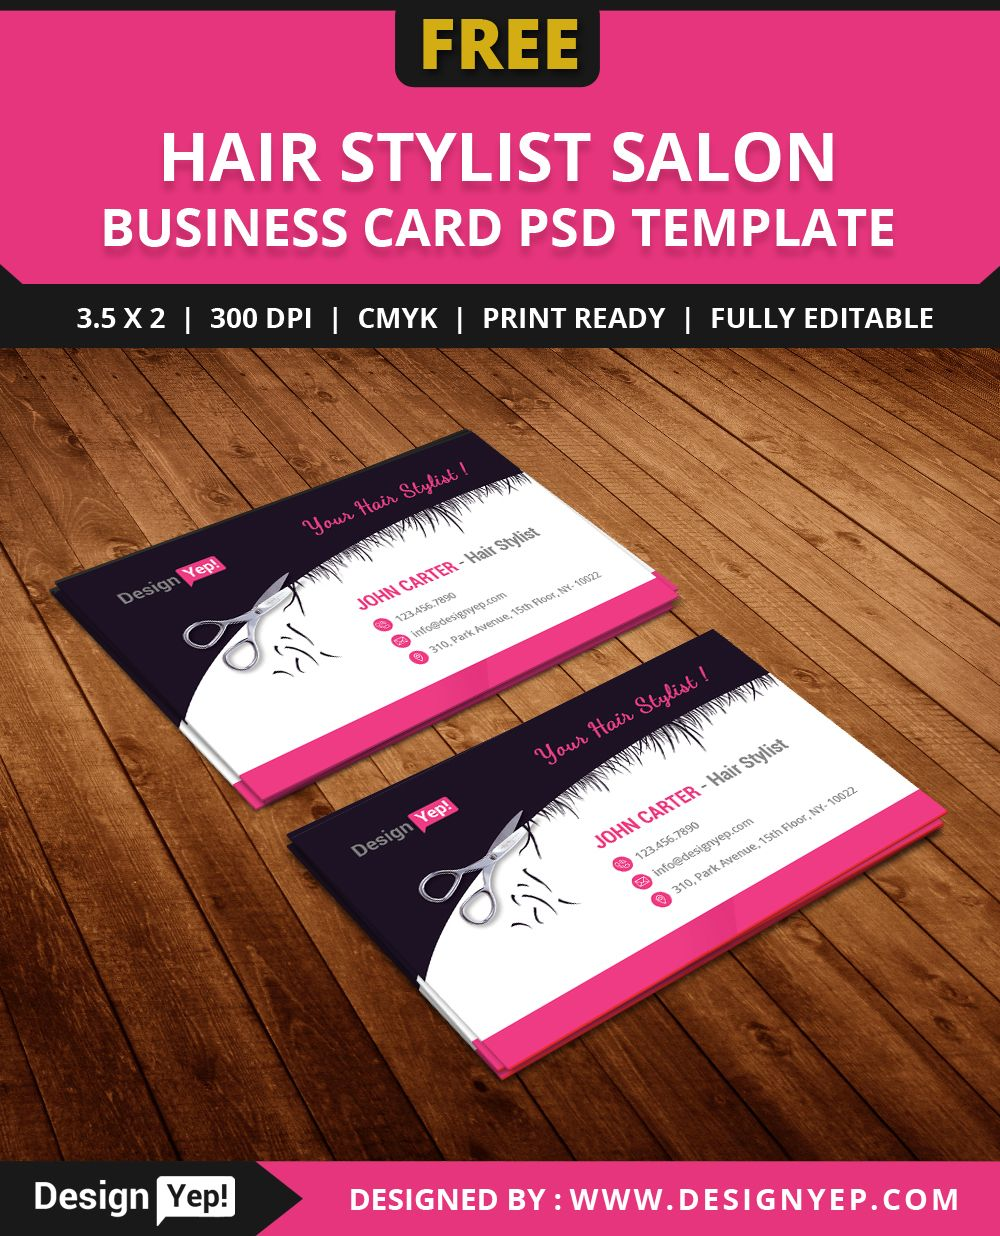 Free hair stylist salon business card template psd free business free hair stylist salon business card template psd reheart Choice Image